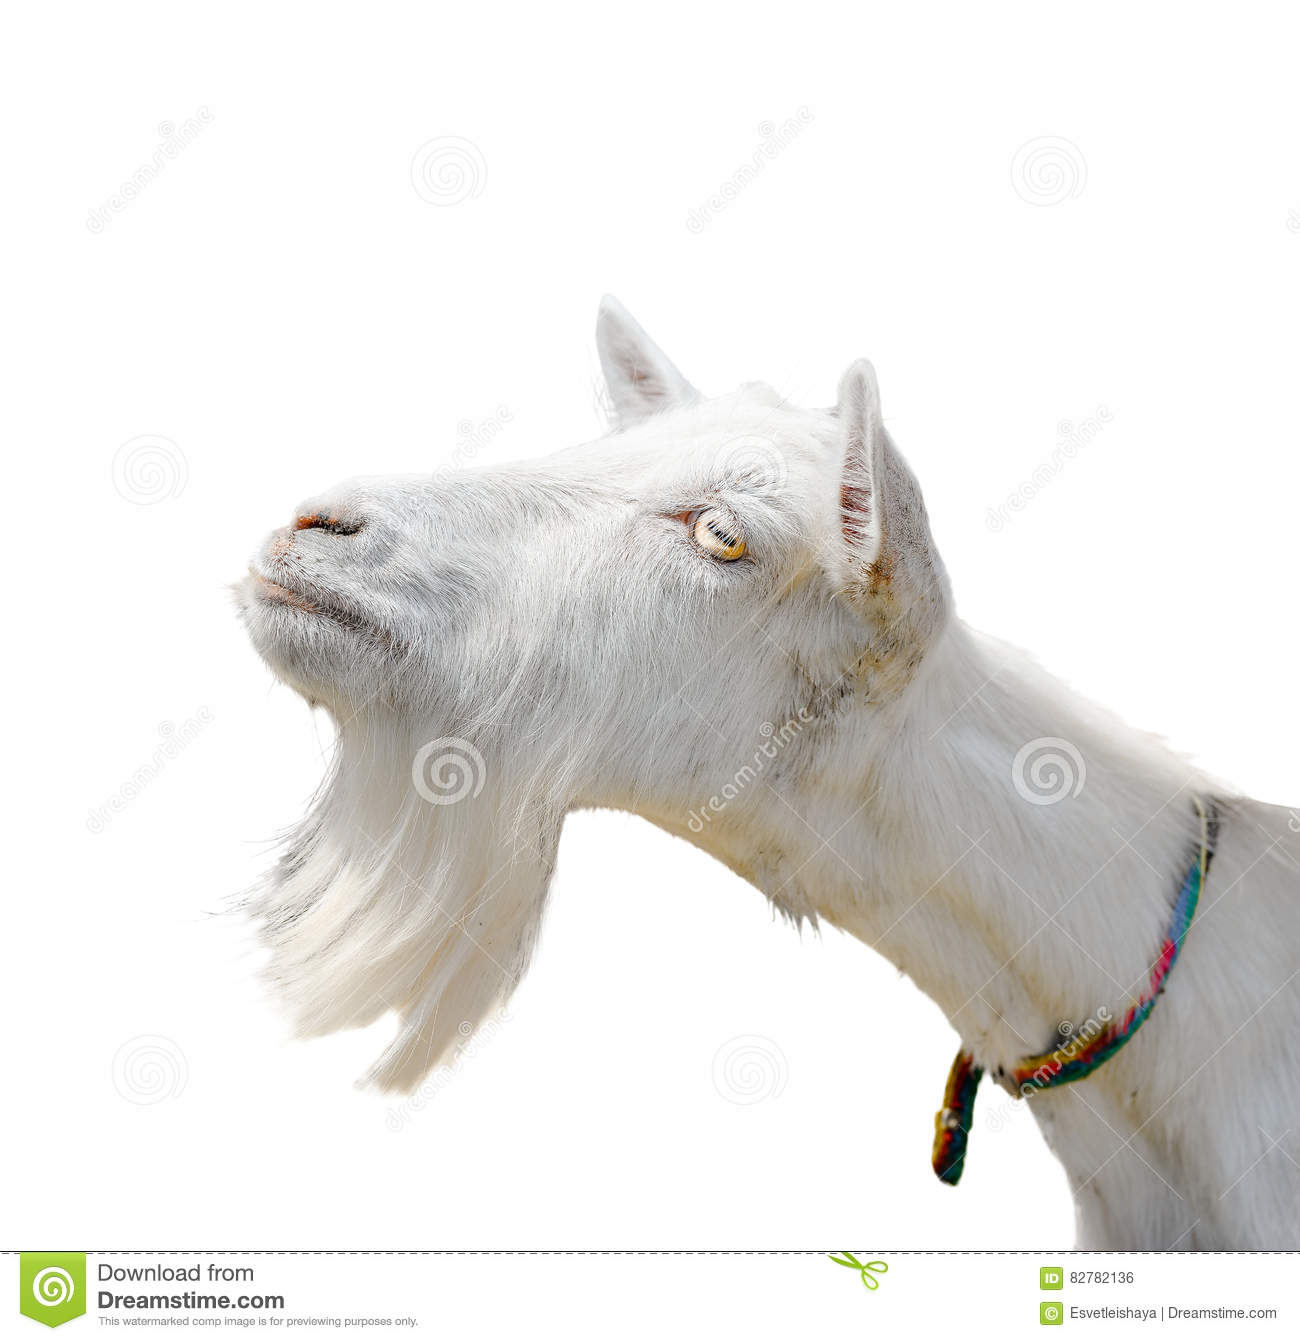 Beautiful, cute, young white goat isolated on white background. Farm animals. Funny goat try to kiss someone